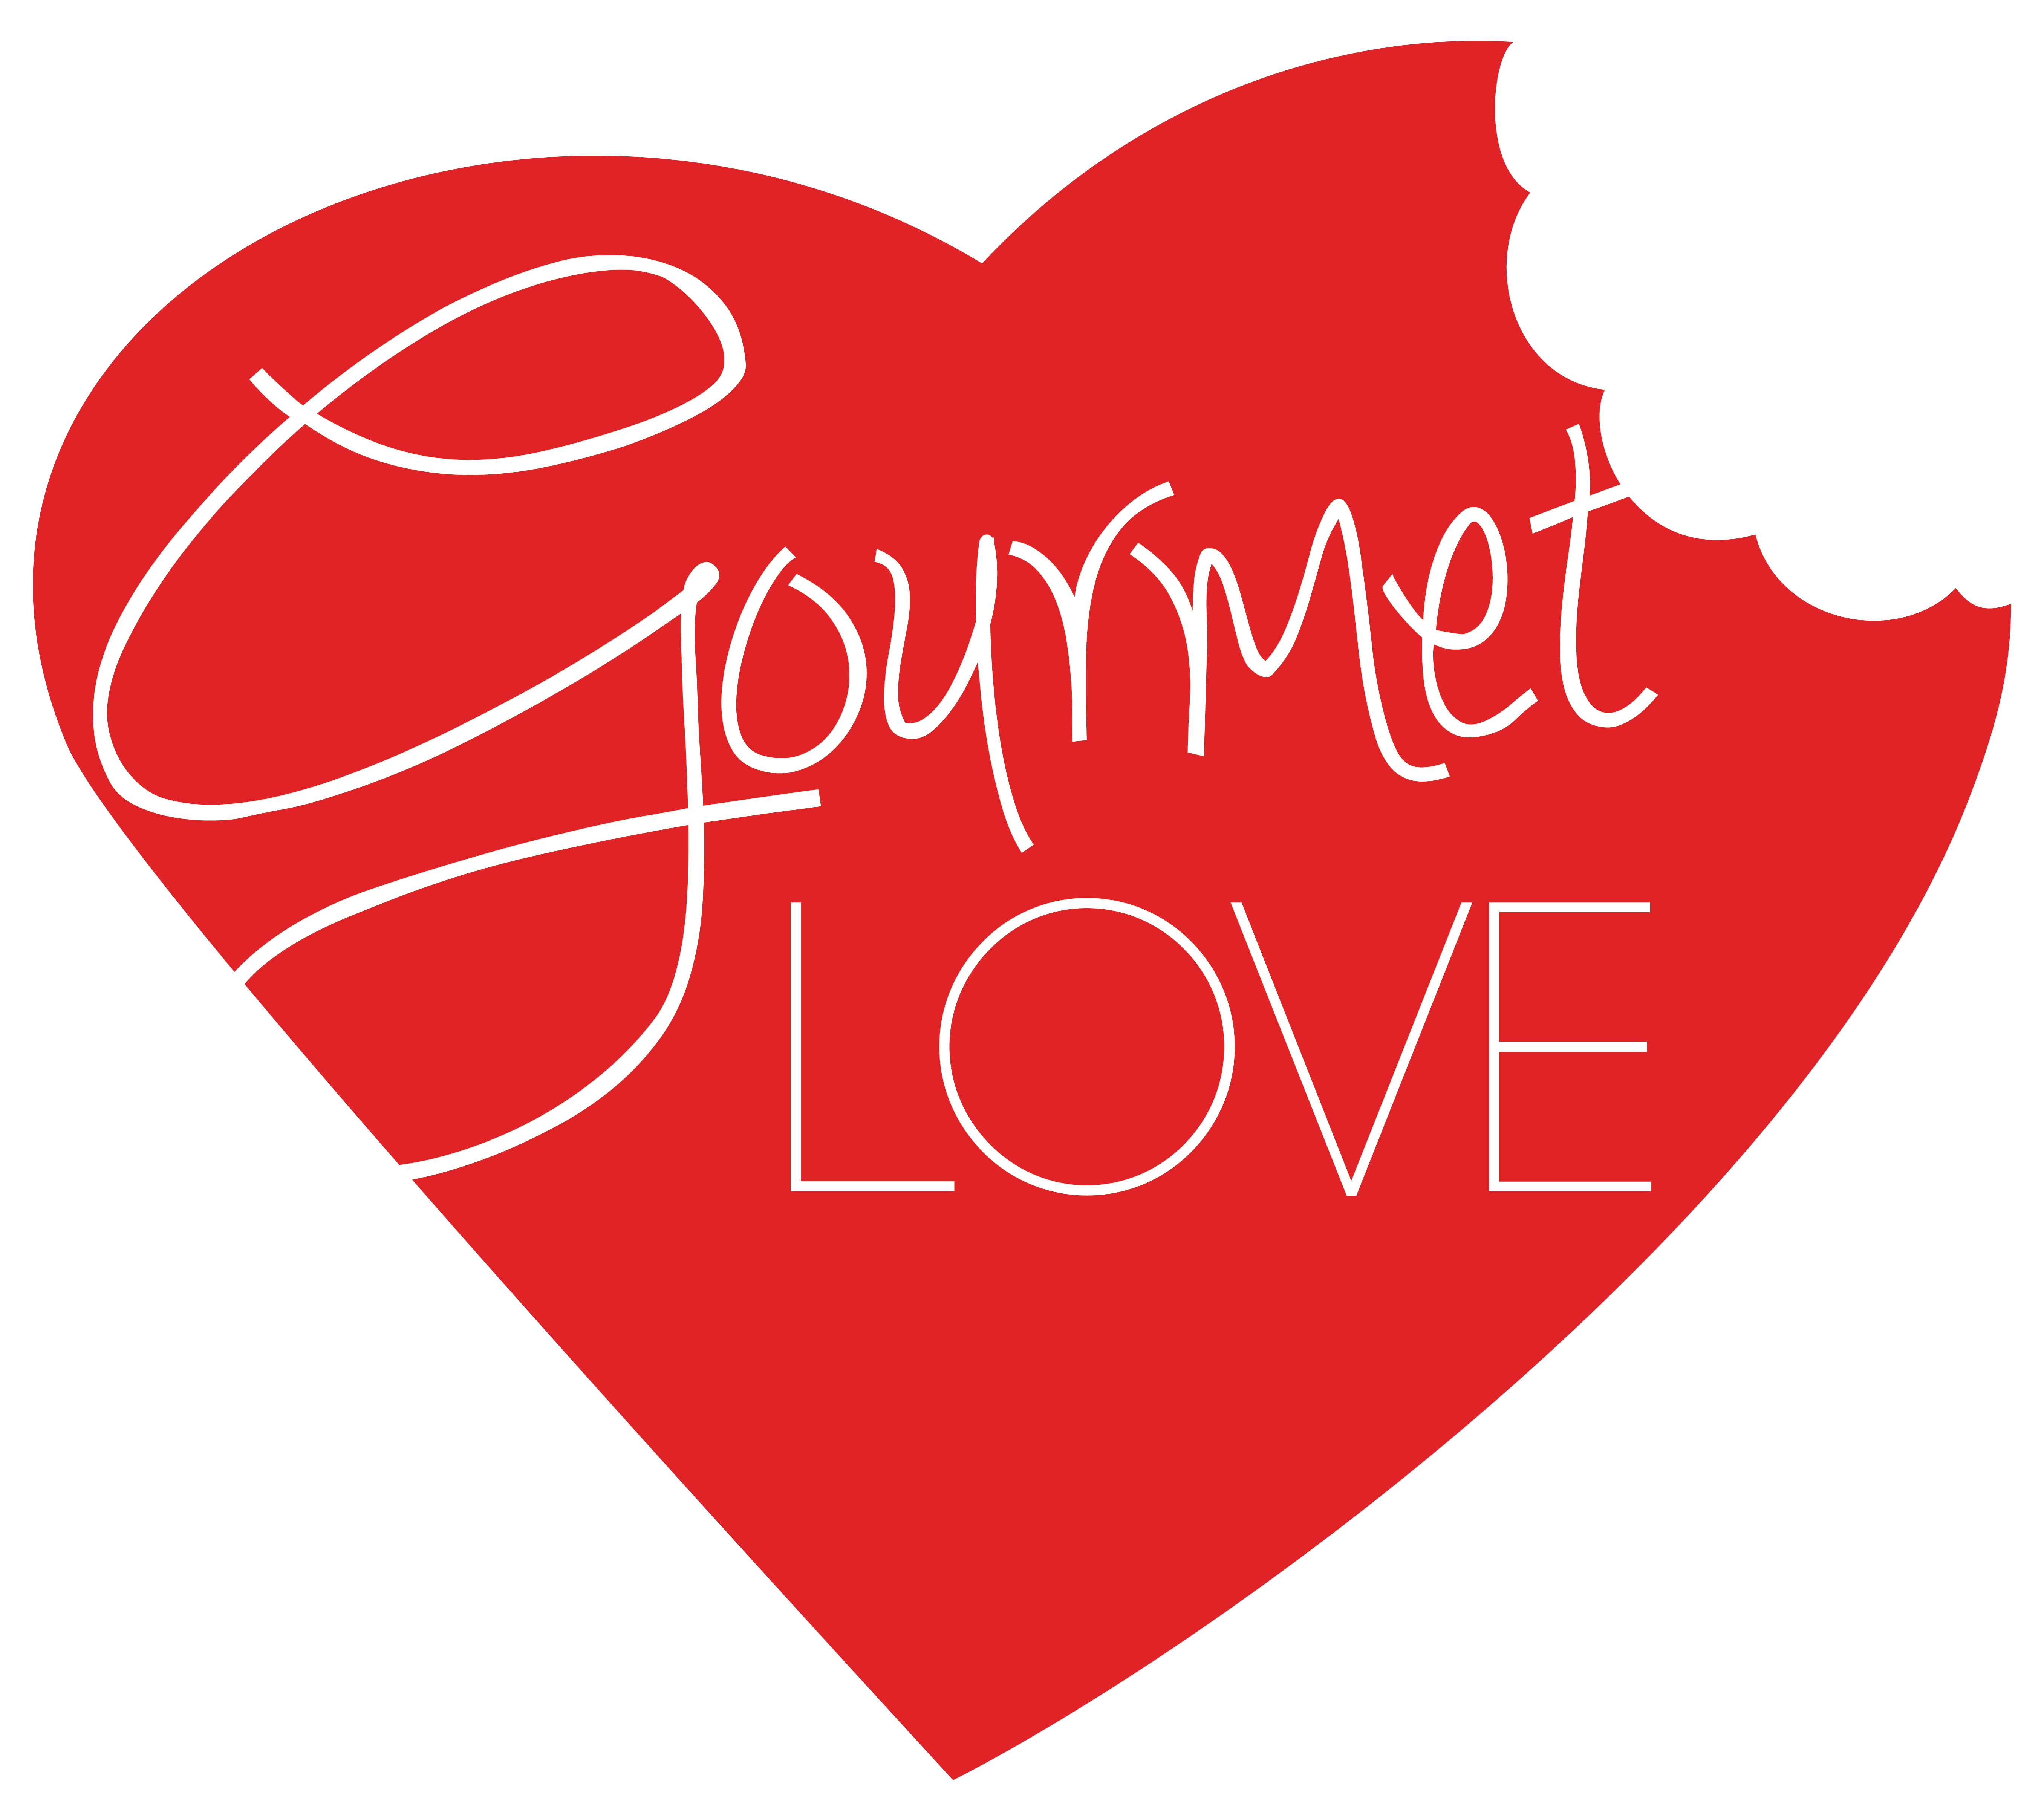 Love from us all png clipart clipart library stock Gourmet Love | Contact Us clipart library stock